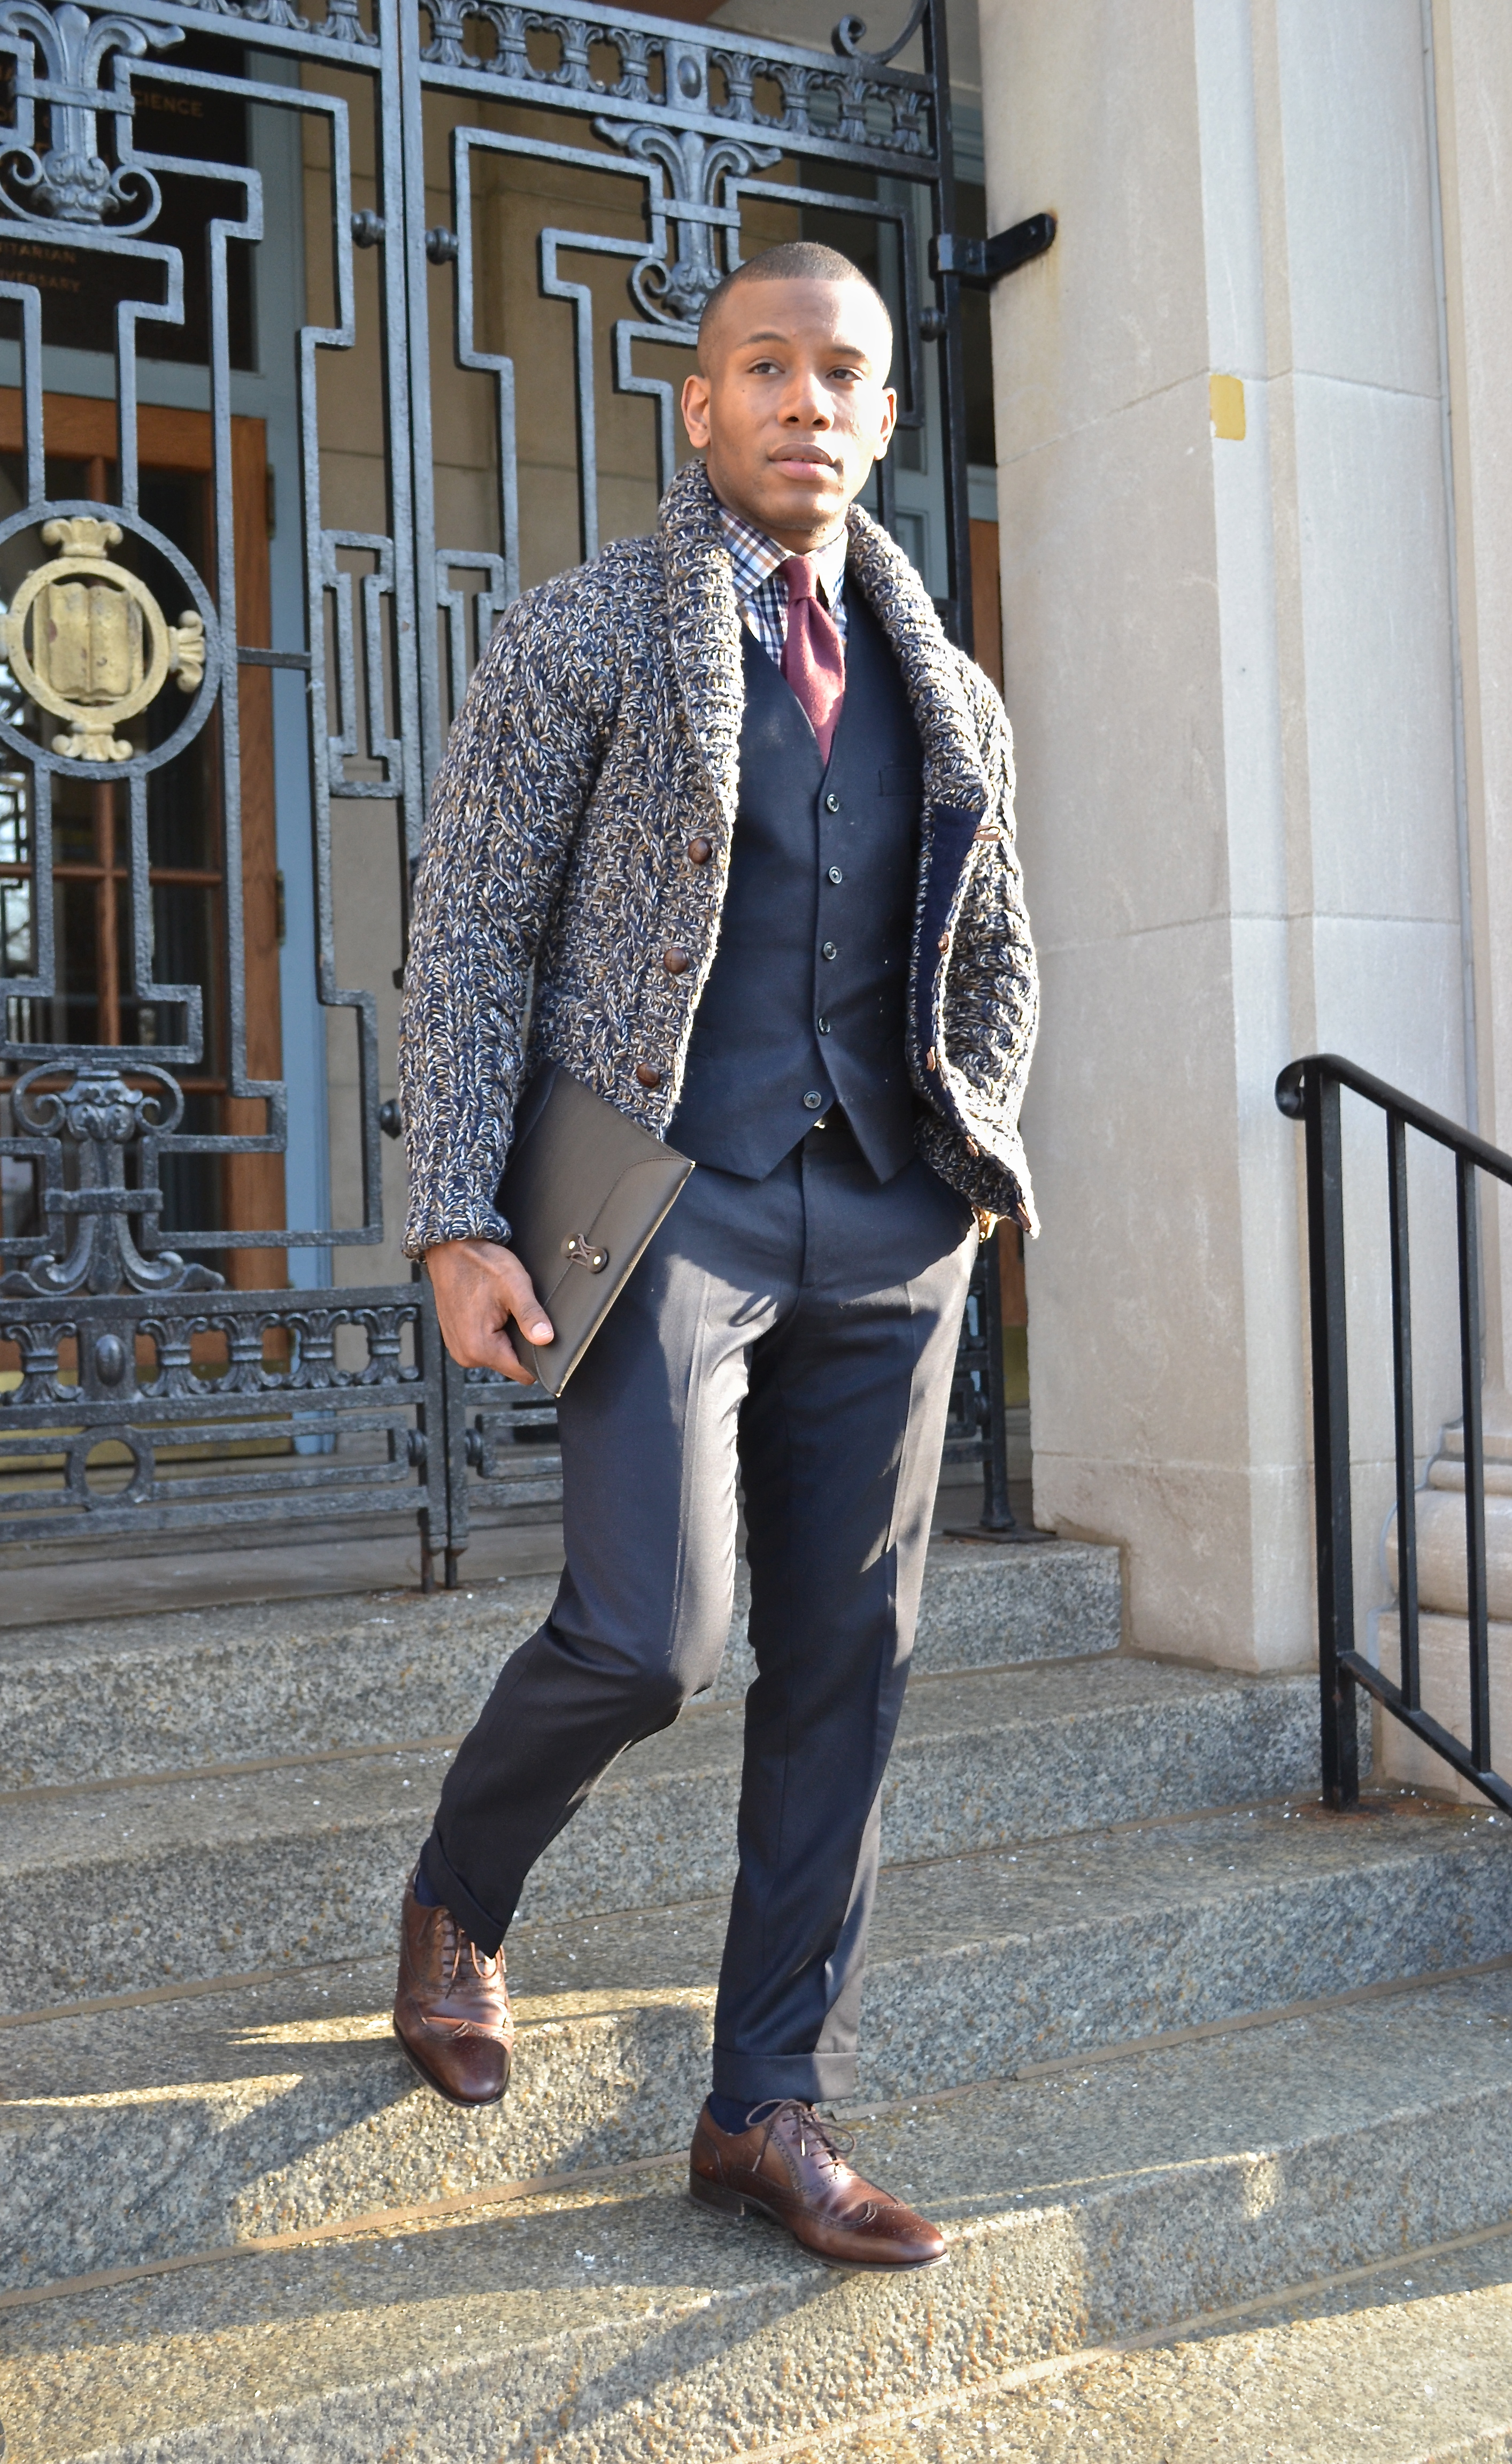 Men's Style Pro in Cardigan as Outerwear